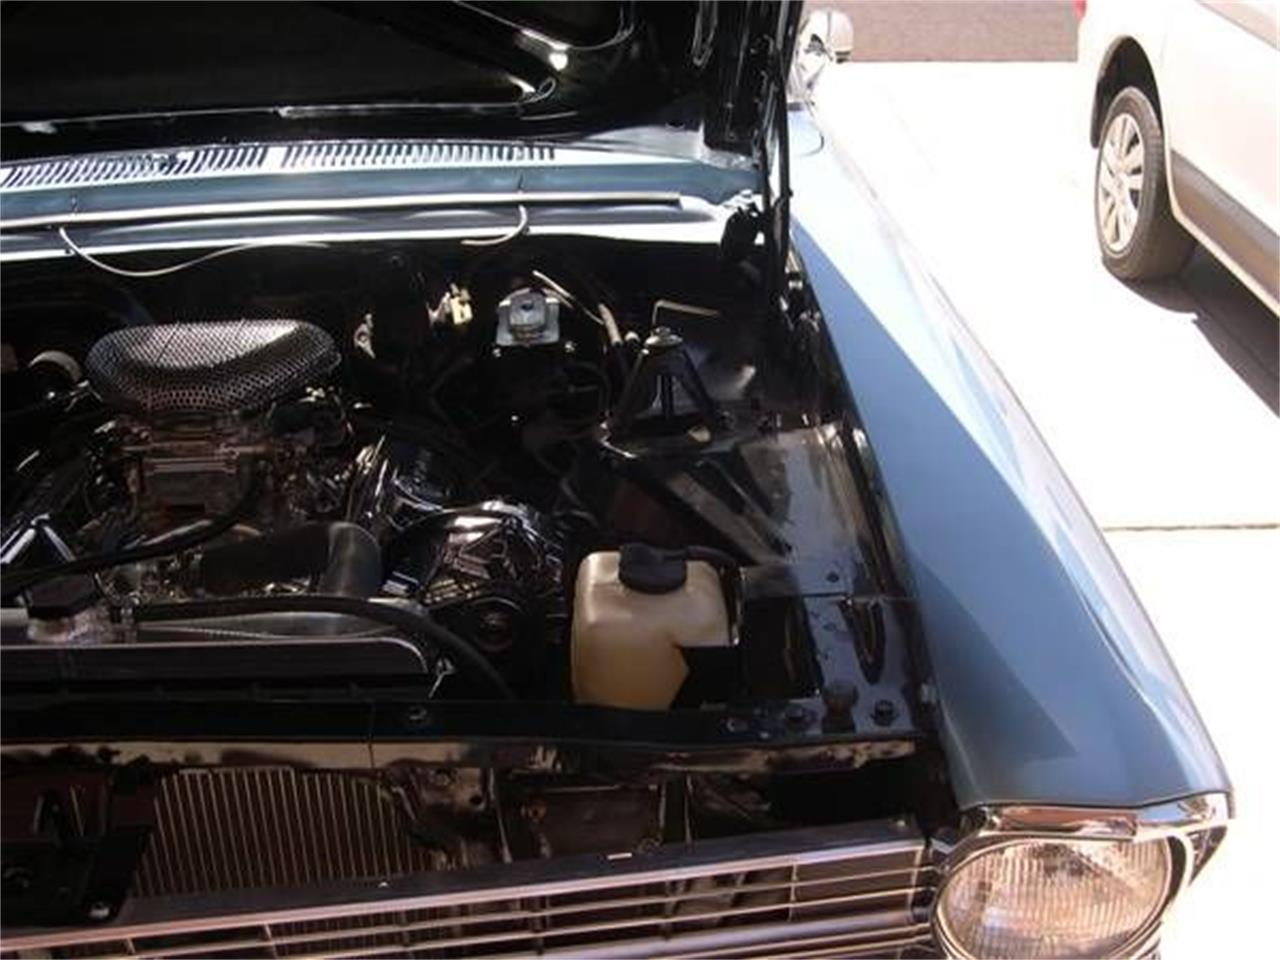 1967 Chevrolet Nova II for sale in Cadillac, MI – photo 4